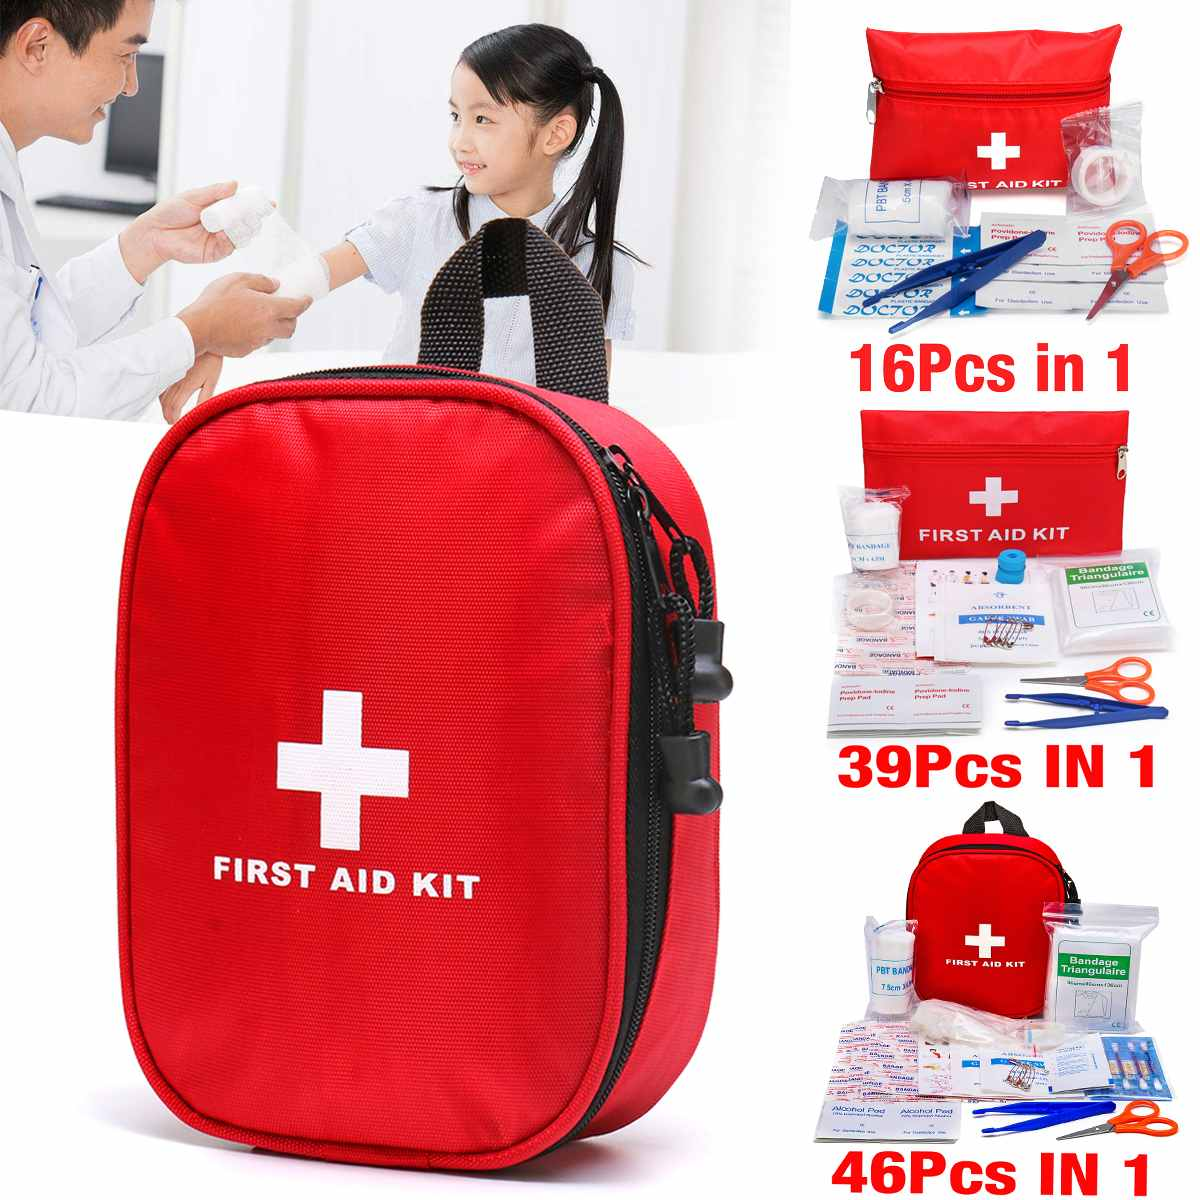 3 Types 16PCS/39PCS/46PCS First Aid Kit Bag Emergency Medical Survival Treatment Rescue Empty Box3 Types 16PCS/39PCS/46PCS First Aid Kit Bag Emergency Medical Survival Treatment Rescue Empty Box